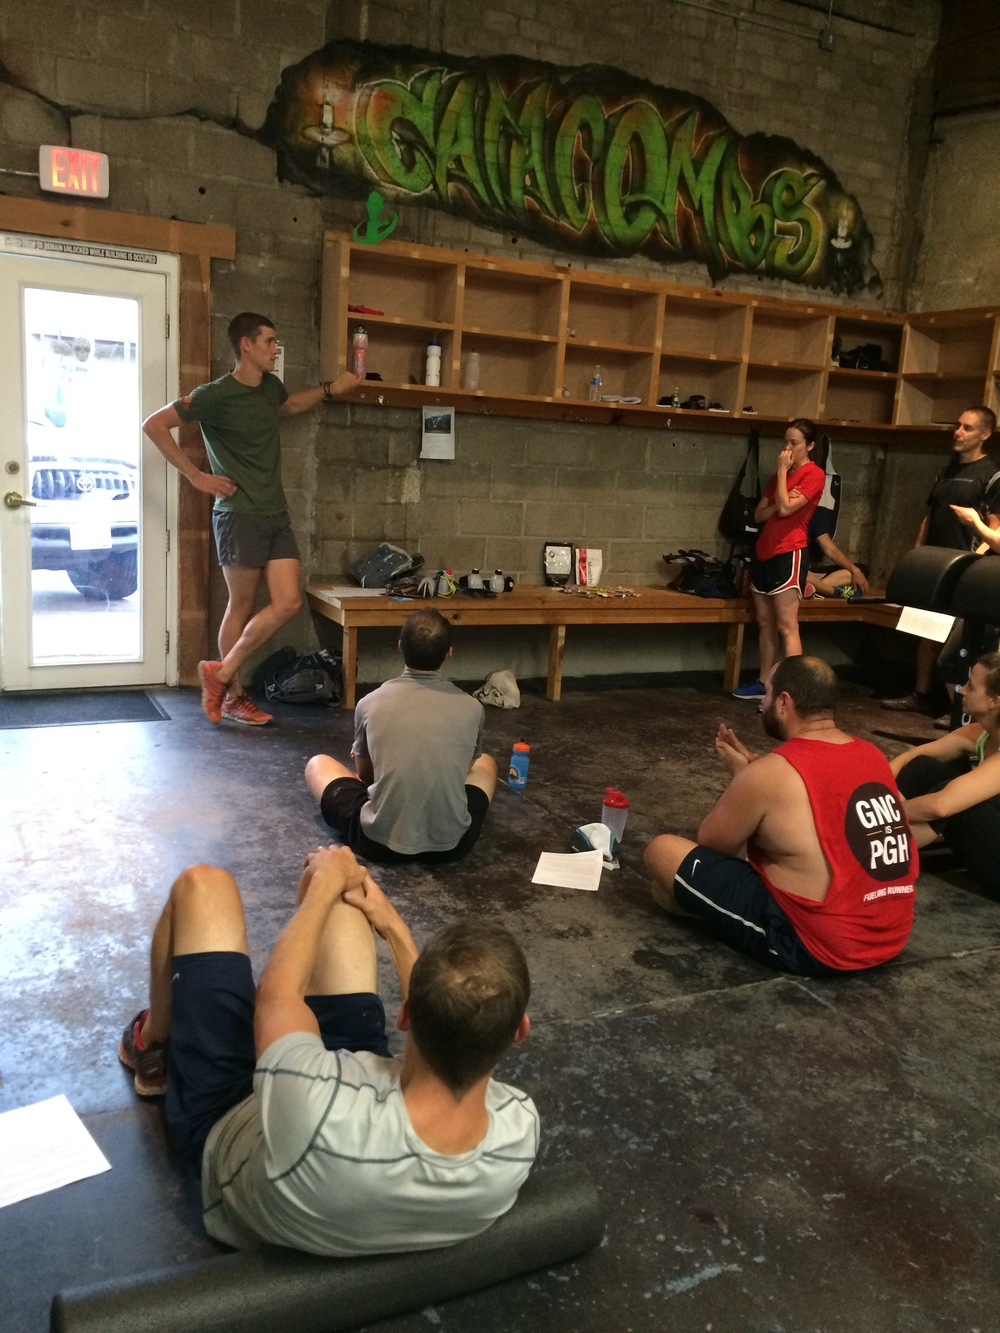 Scott giving the catacombs endurance team the post workout lowdown on nutrition/fueling for racing and performance.